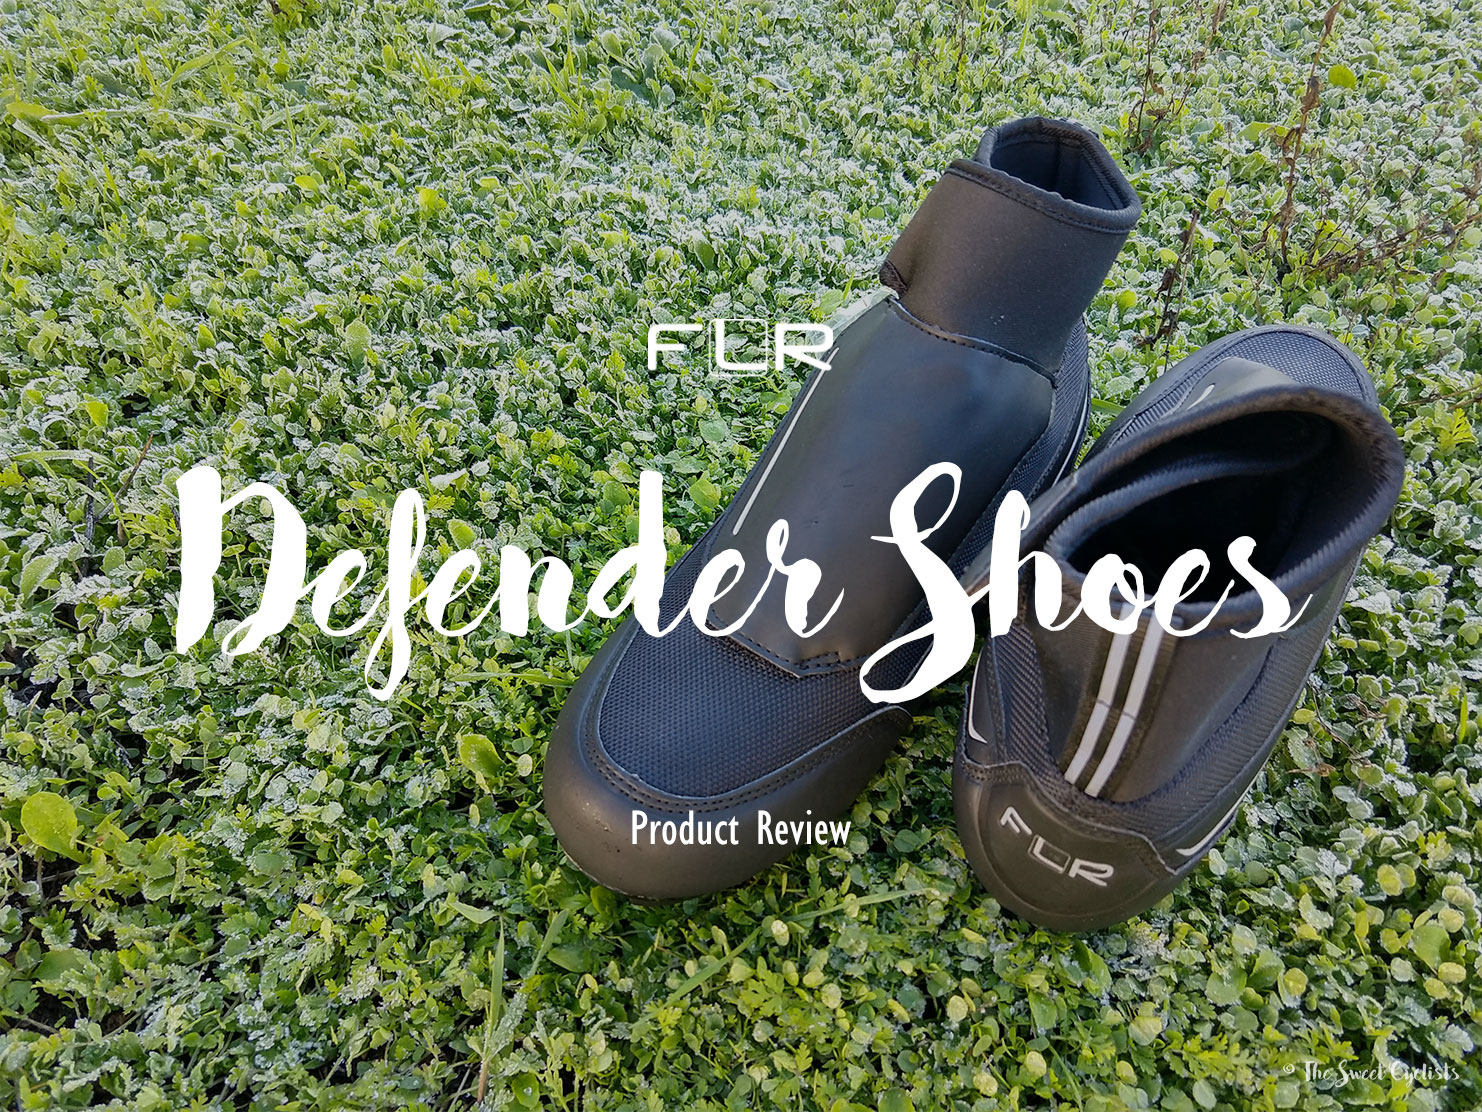 FLR Defender, affordable insulated and waterproof winter cycling shoes